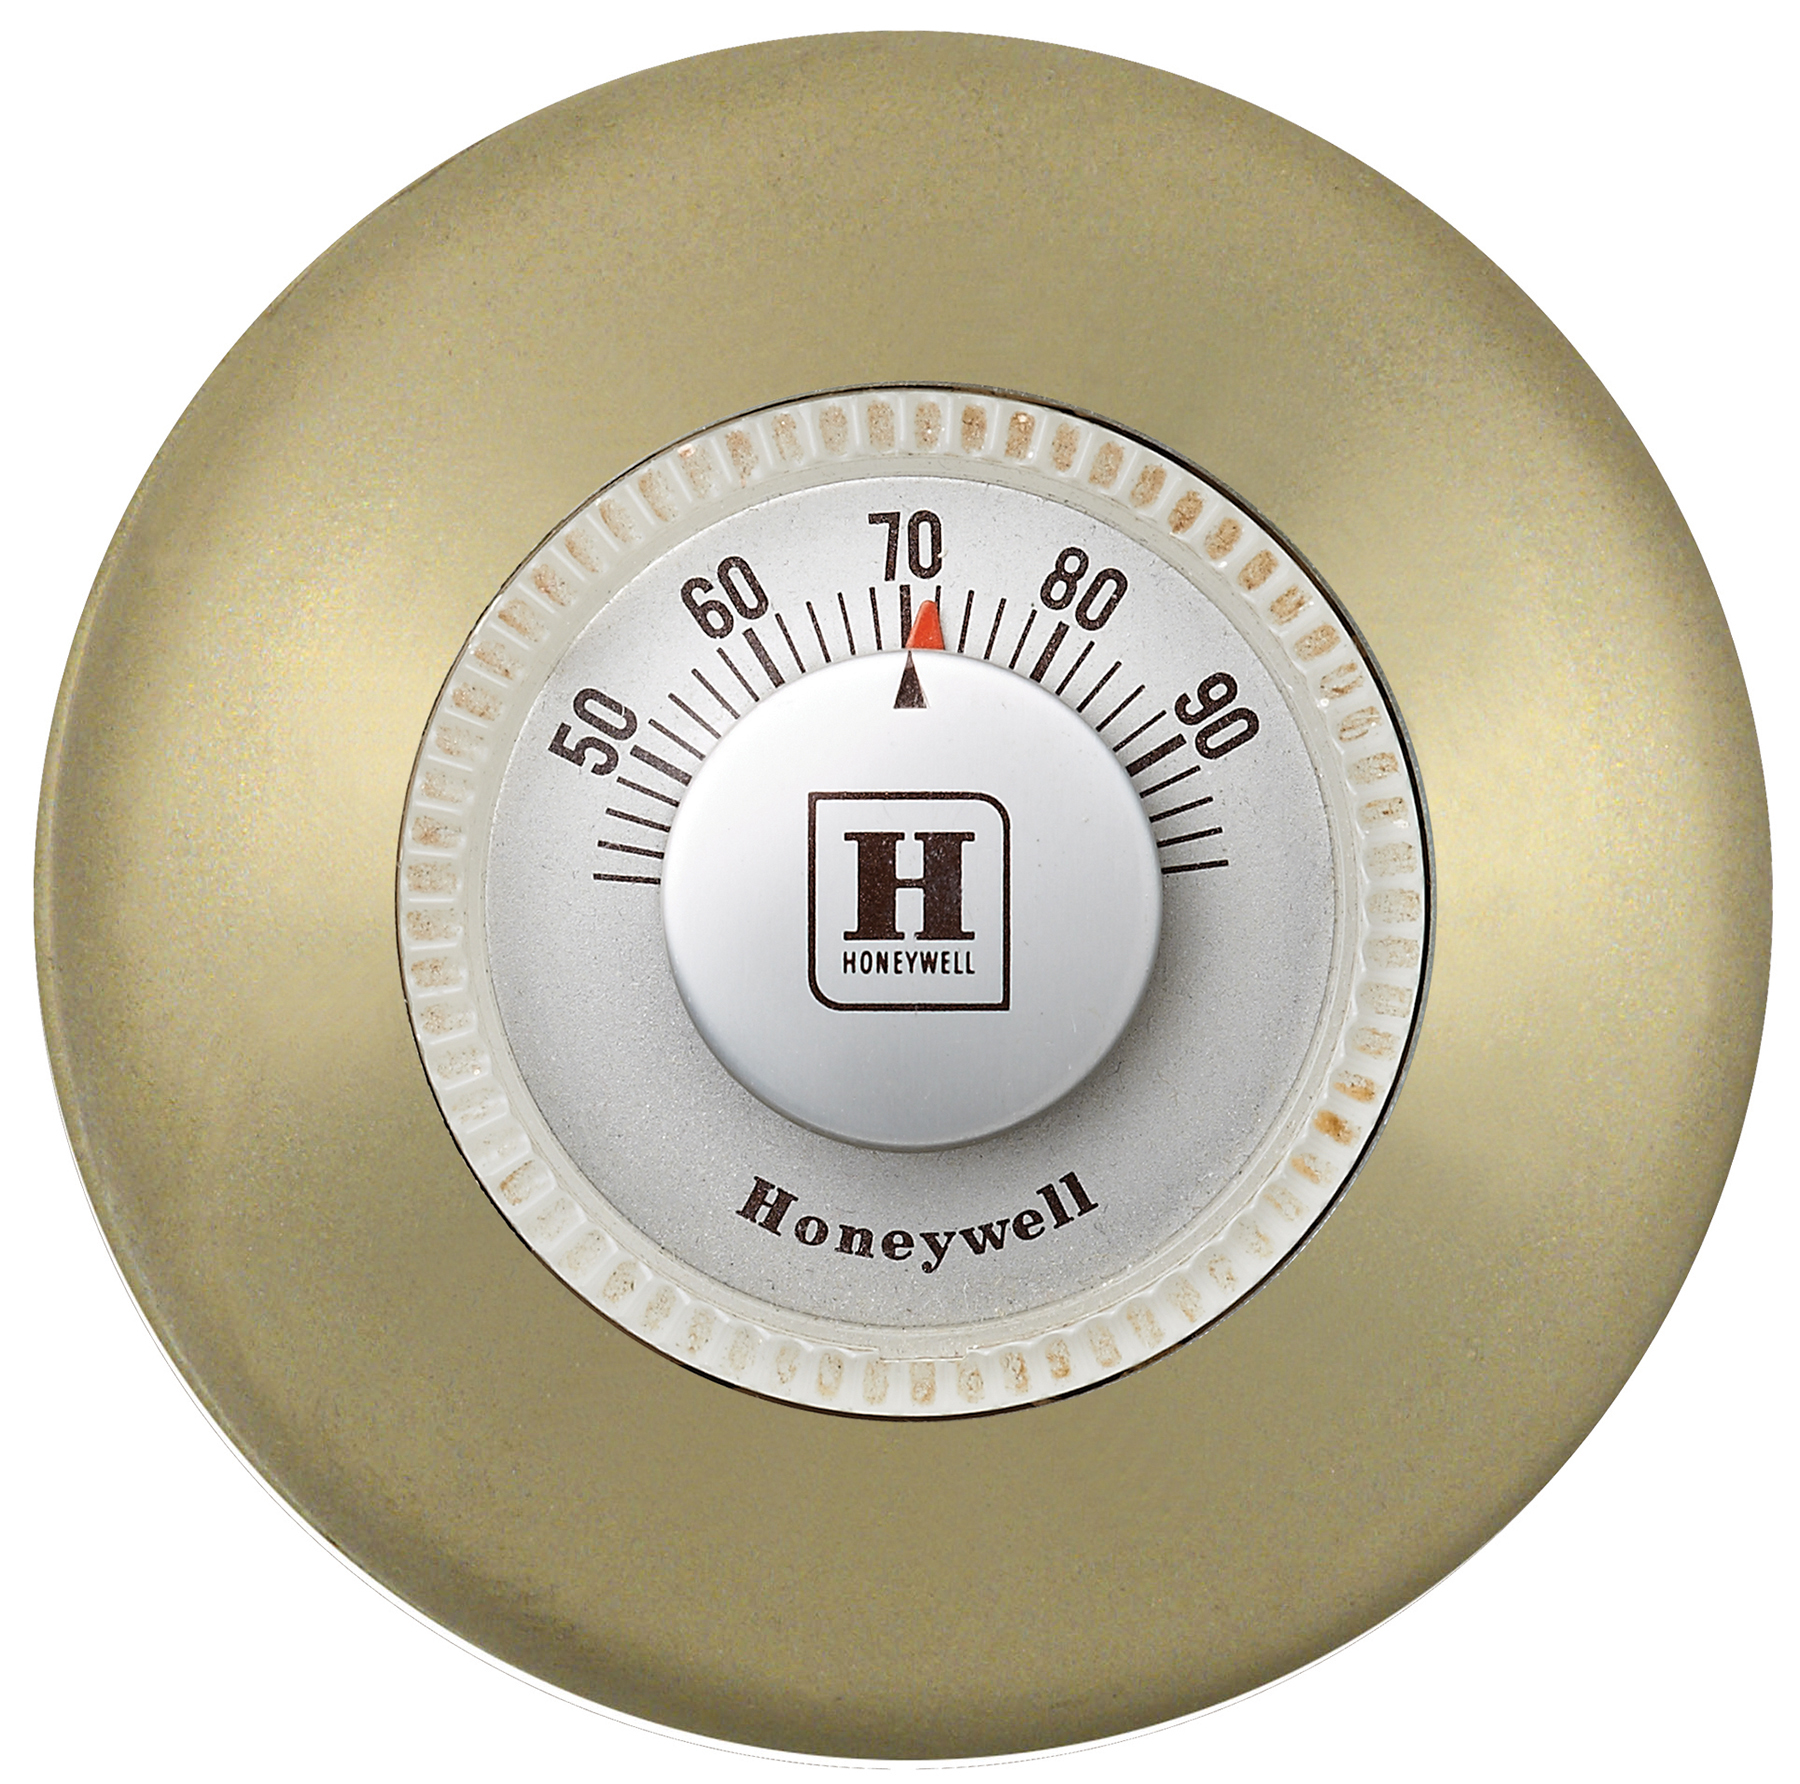 Comfort When Youre Home Savings Away Introducing Erfahrungsbericht Zum Thermostat Rondostat Hr 20e Von Honeywell Reinvented By The Lyric